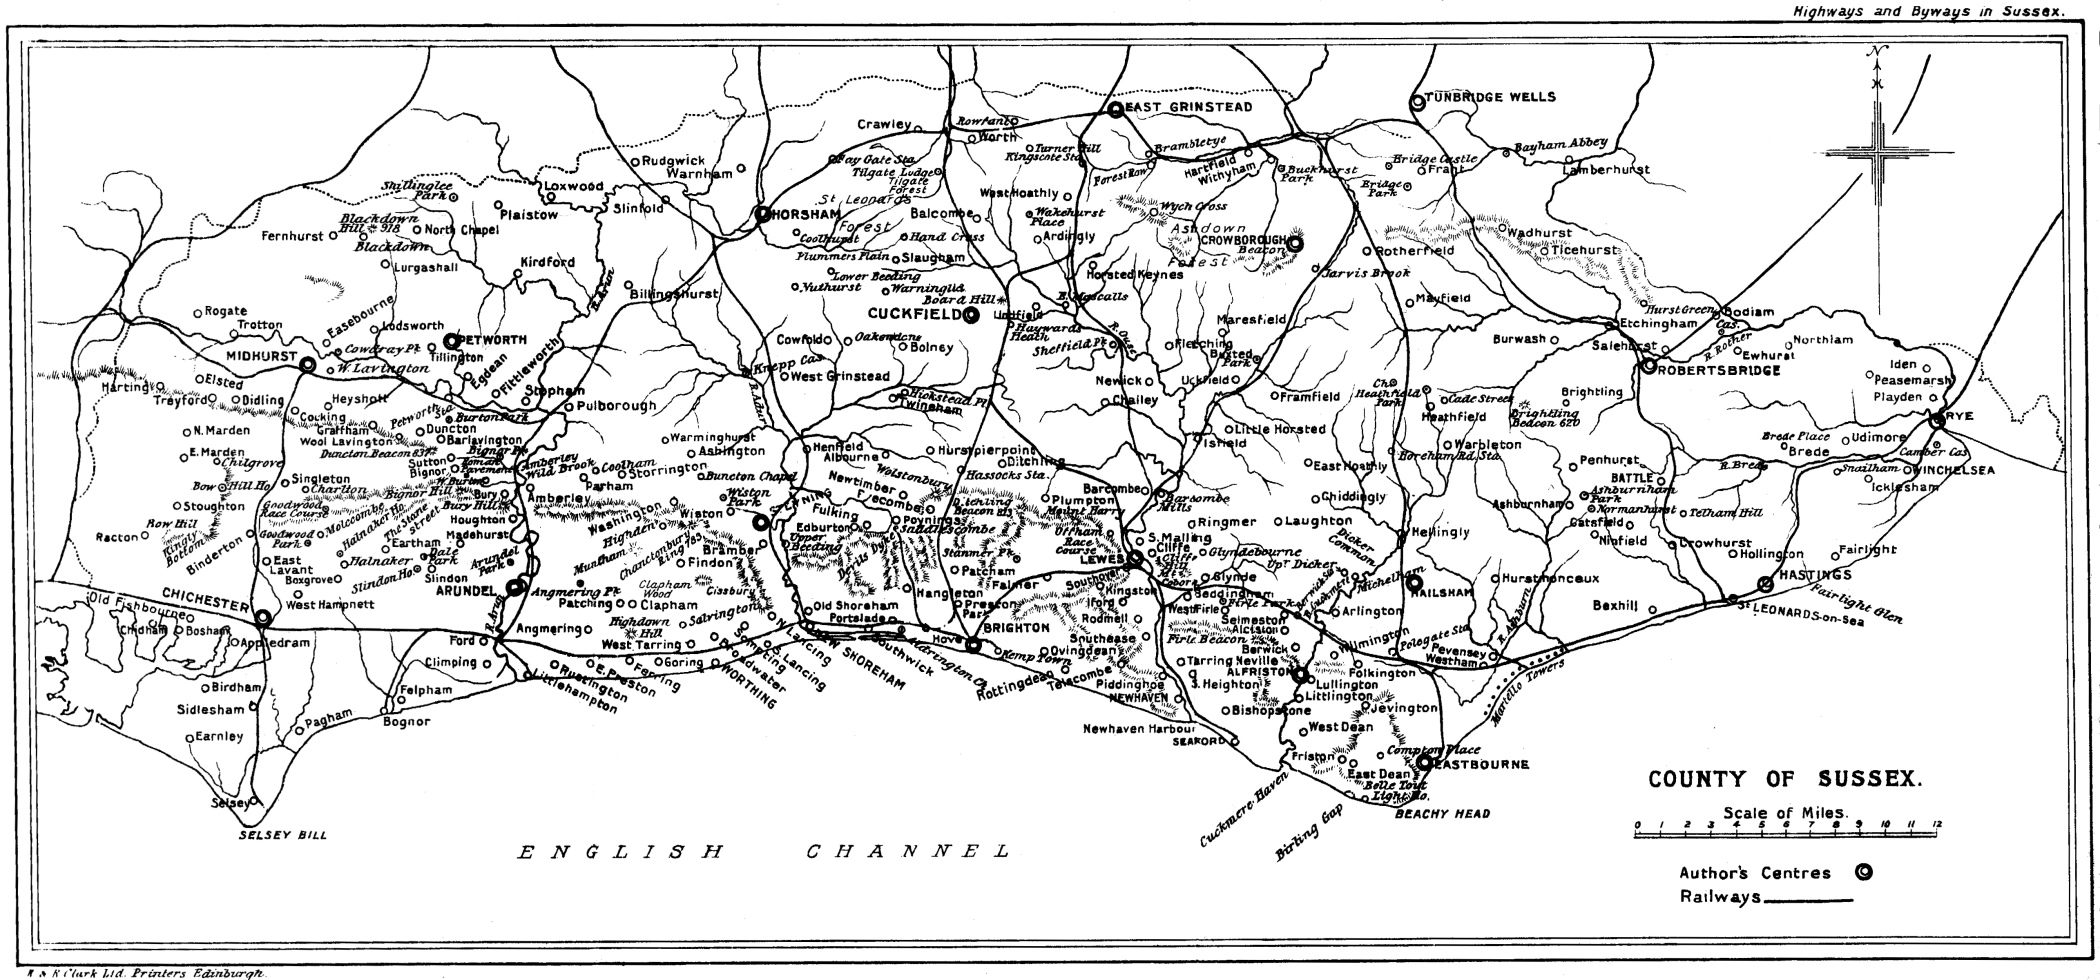 Map of sussex likewise Maps moreover Parroquia De Saint James Jamaica additionally Historical Map Jamaica 1901 in addition Blank Map Of Jamaica With Borders. on map of jamaica with parishes